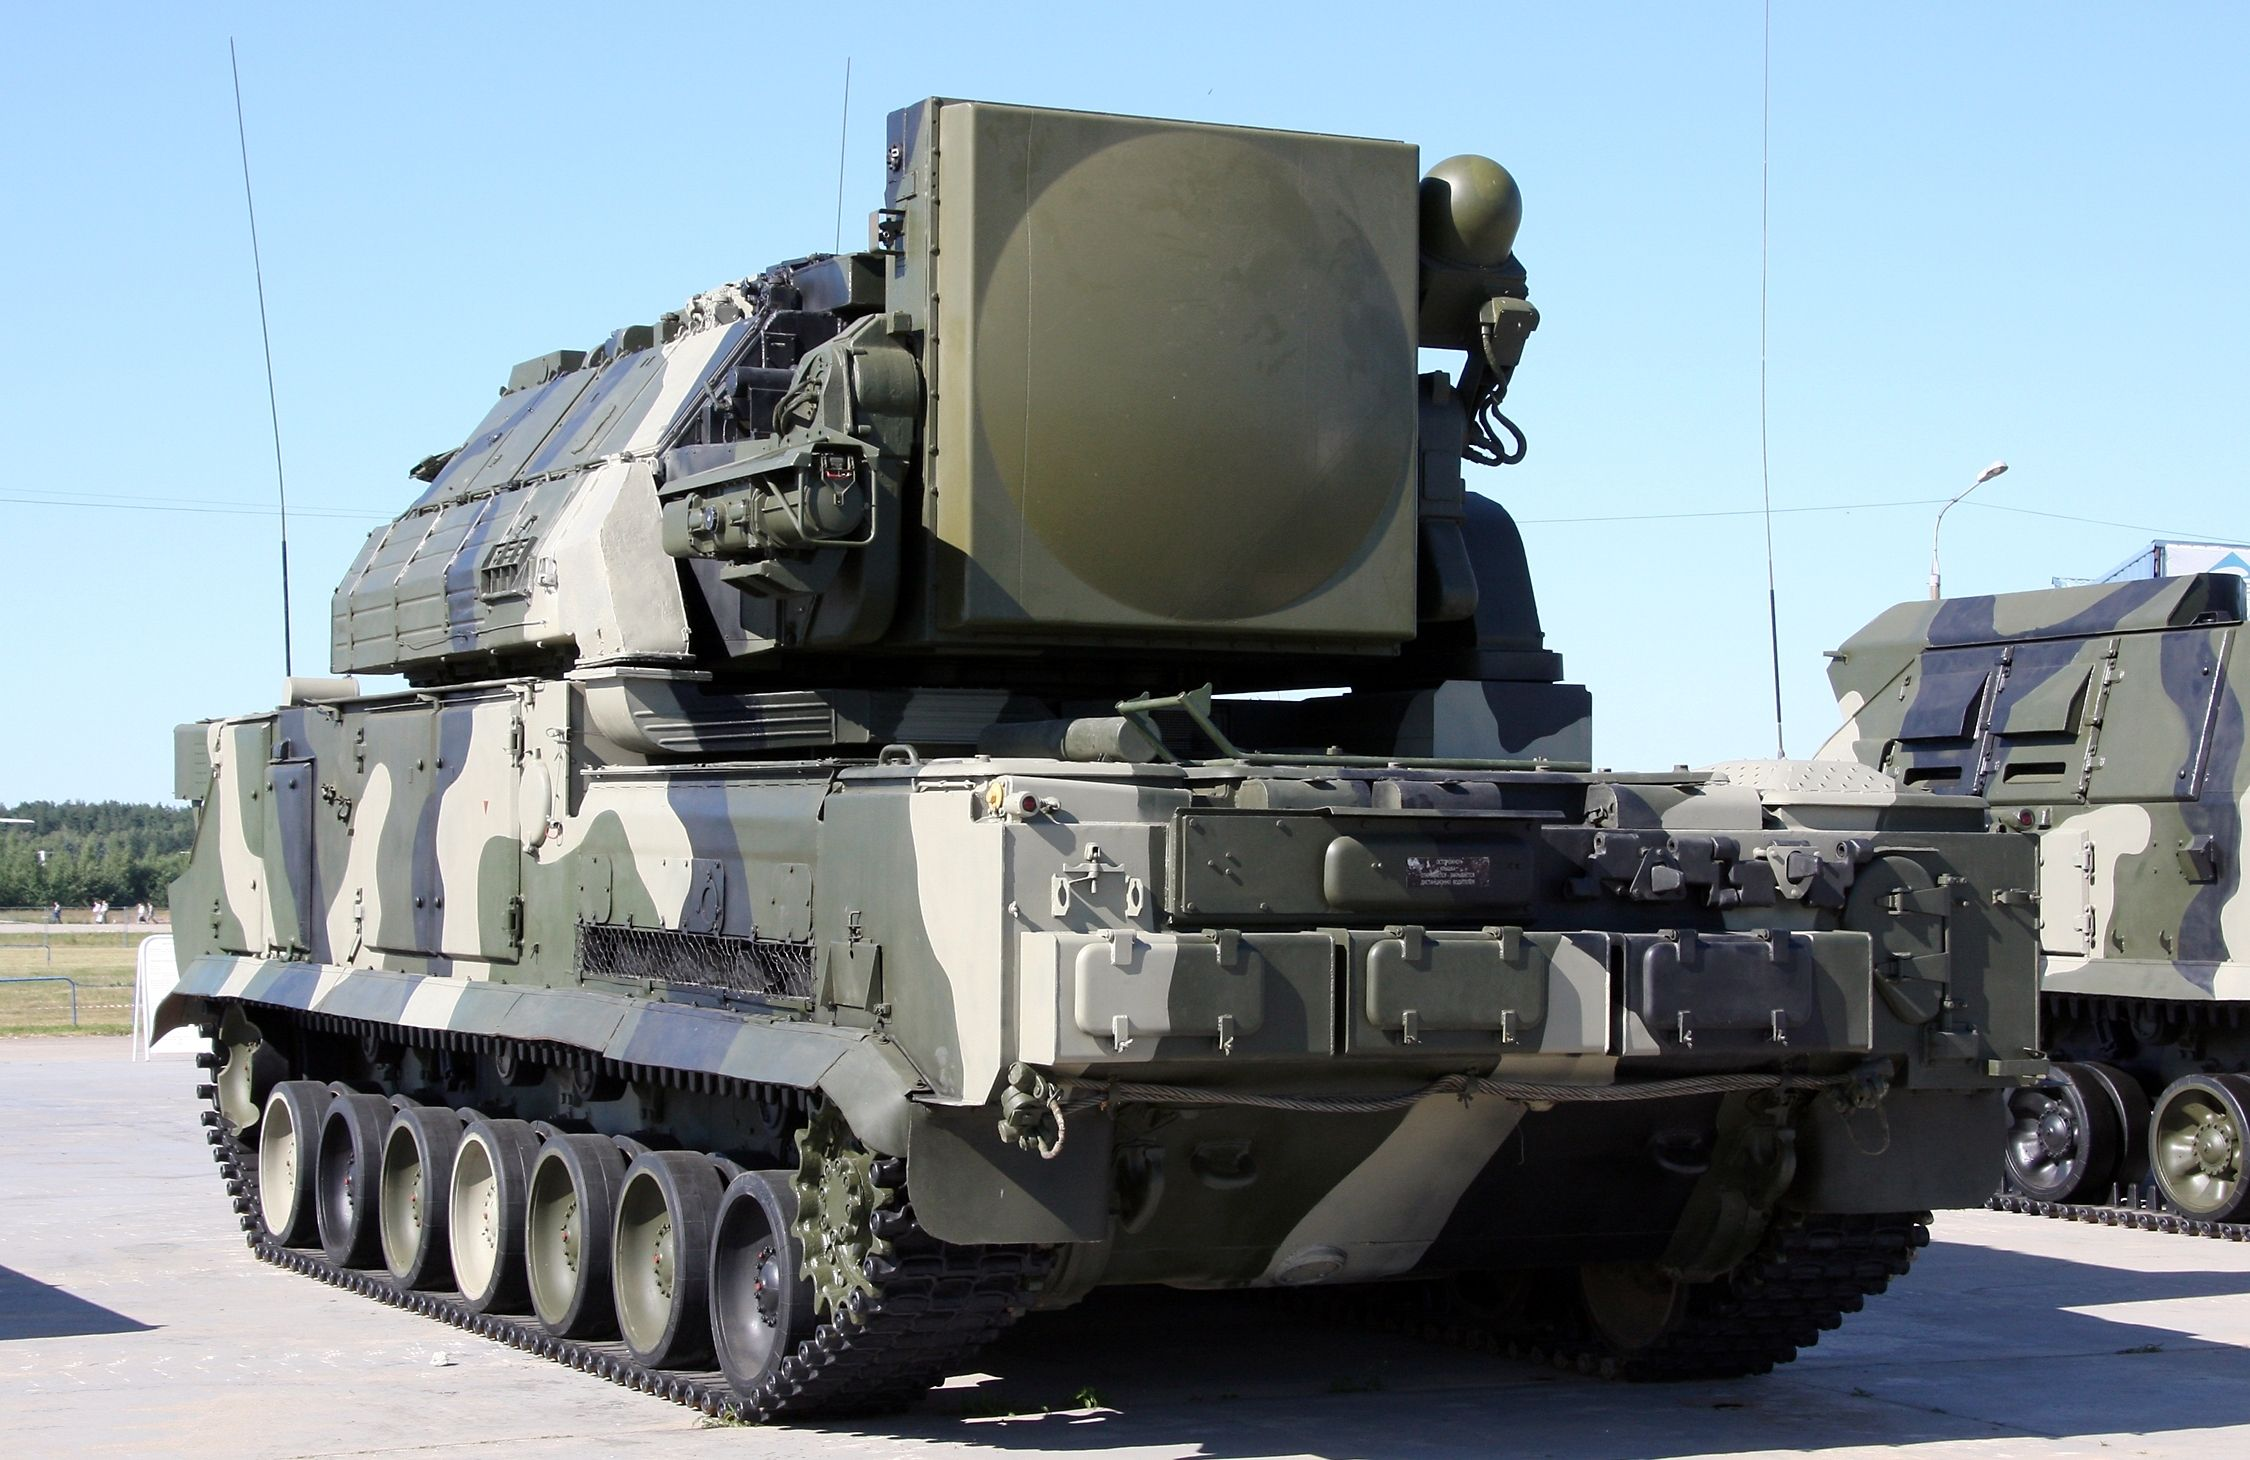 S 300 missile systems vs patriot - Russia Demonstrates Its Power 300 Missiles During Practice Drills Ihls Israel Homeland Security